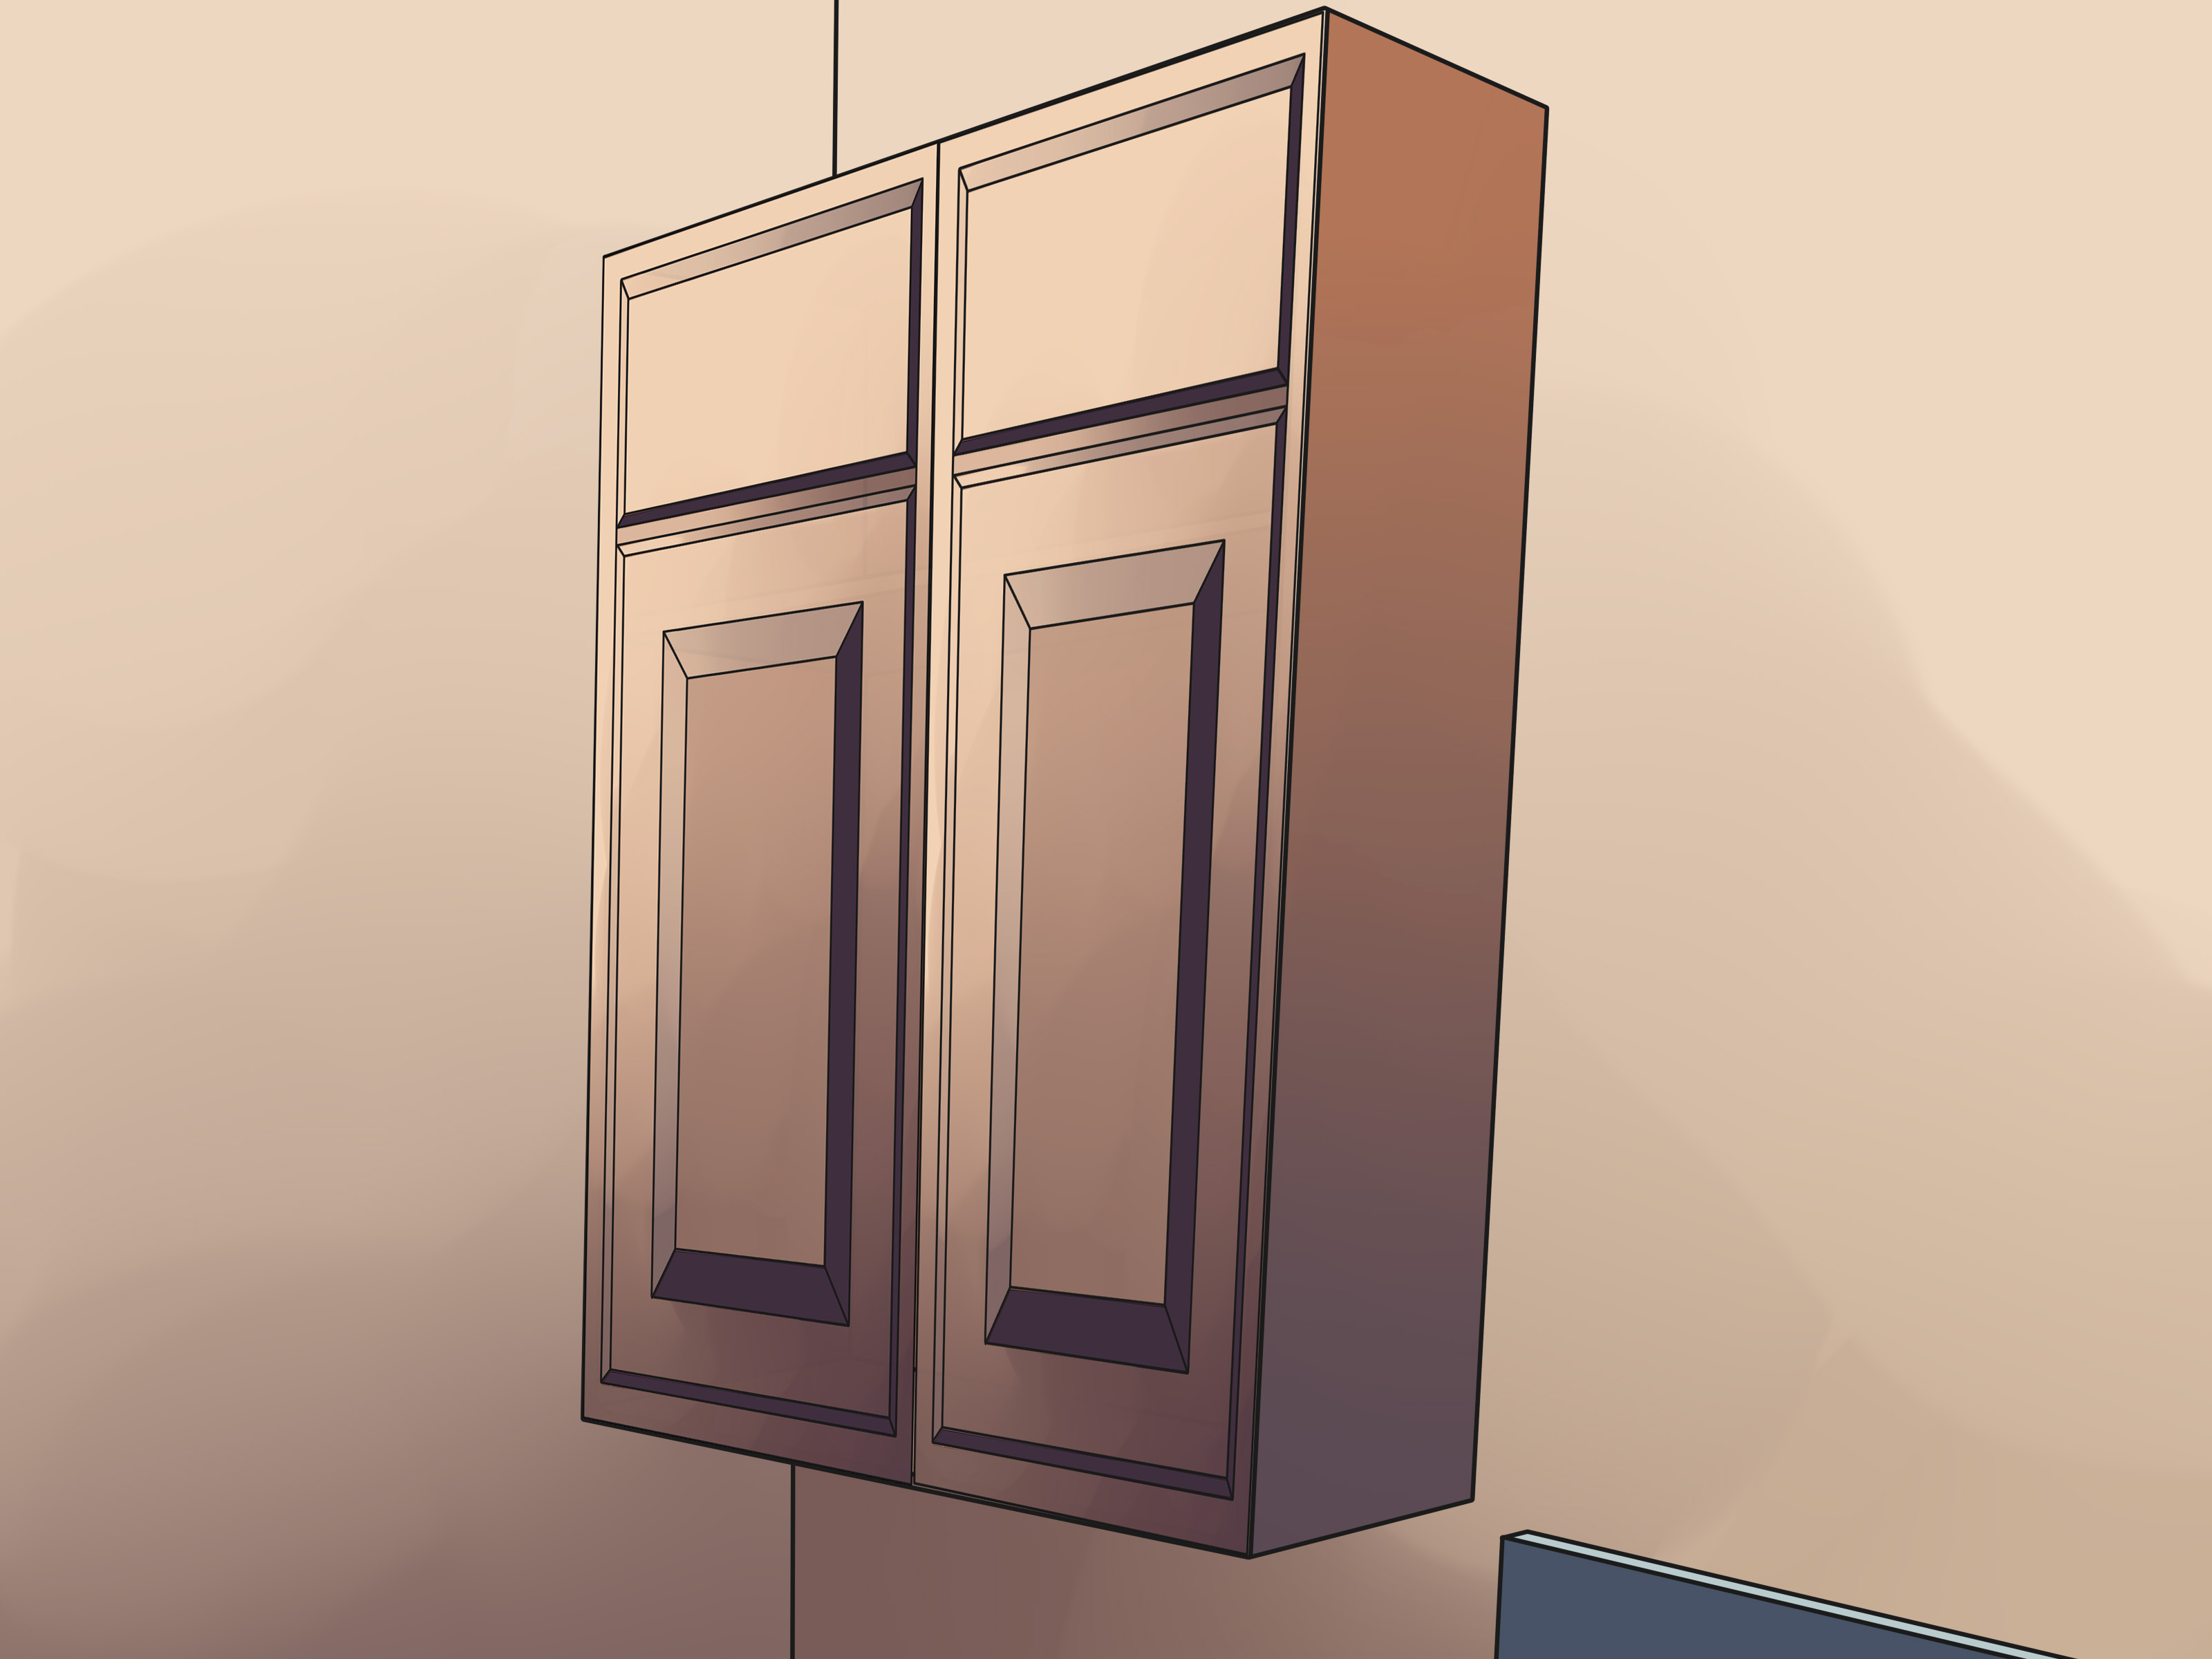 Distance Between Countertop And Upper Cabinets How To Build A Cabinet: 15 Steps (with Pictures) - Wikihow